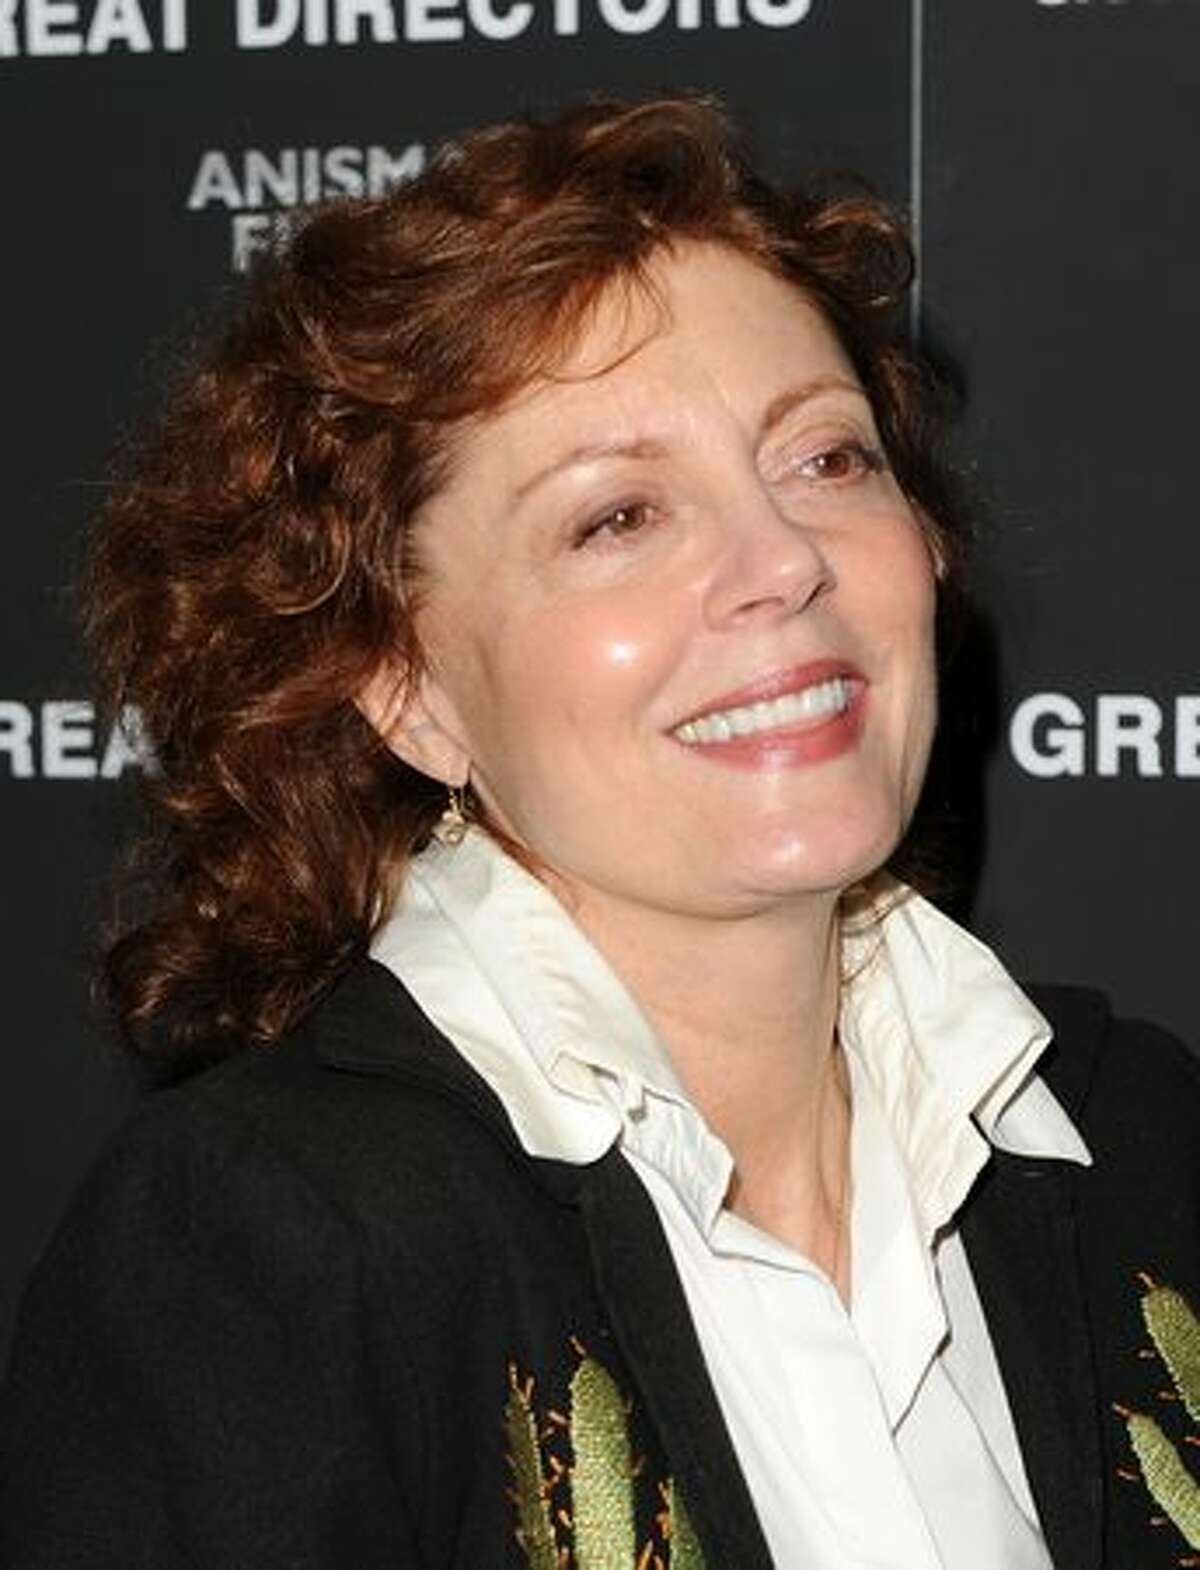 Actress Susan Sarandon attends the premiere of